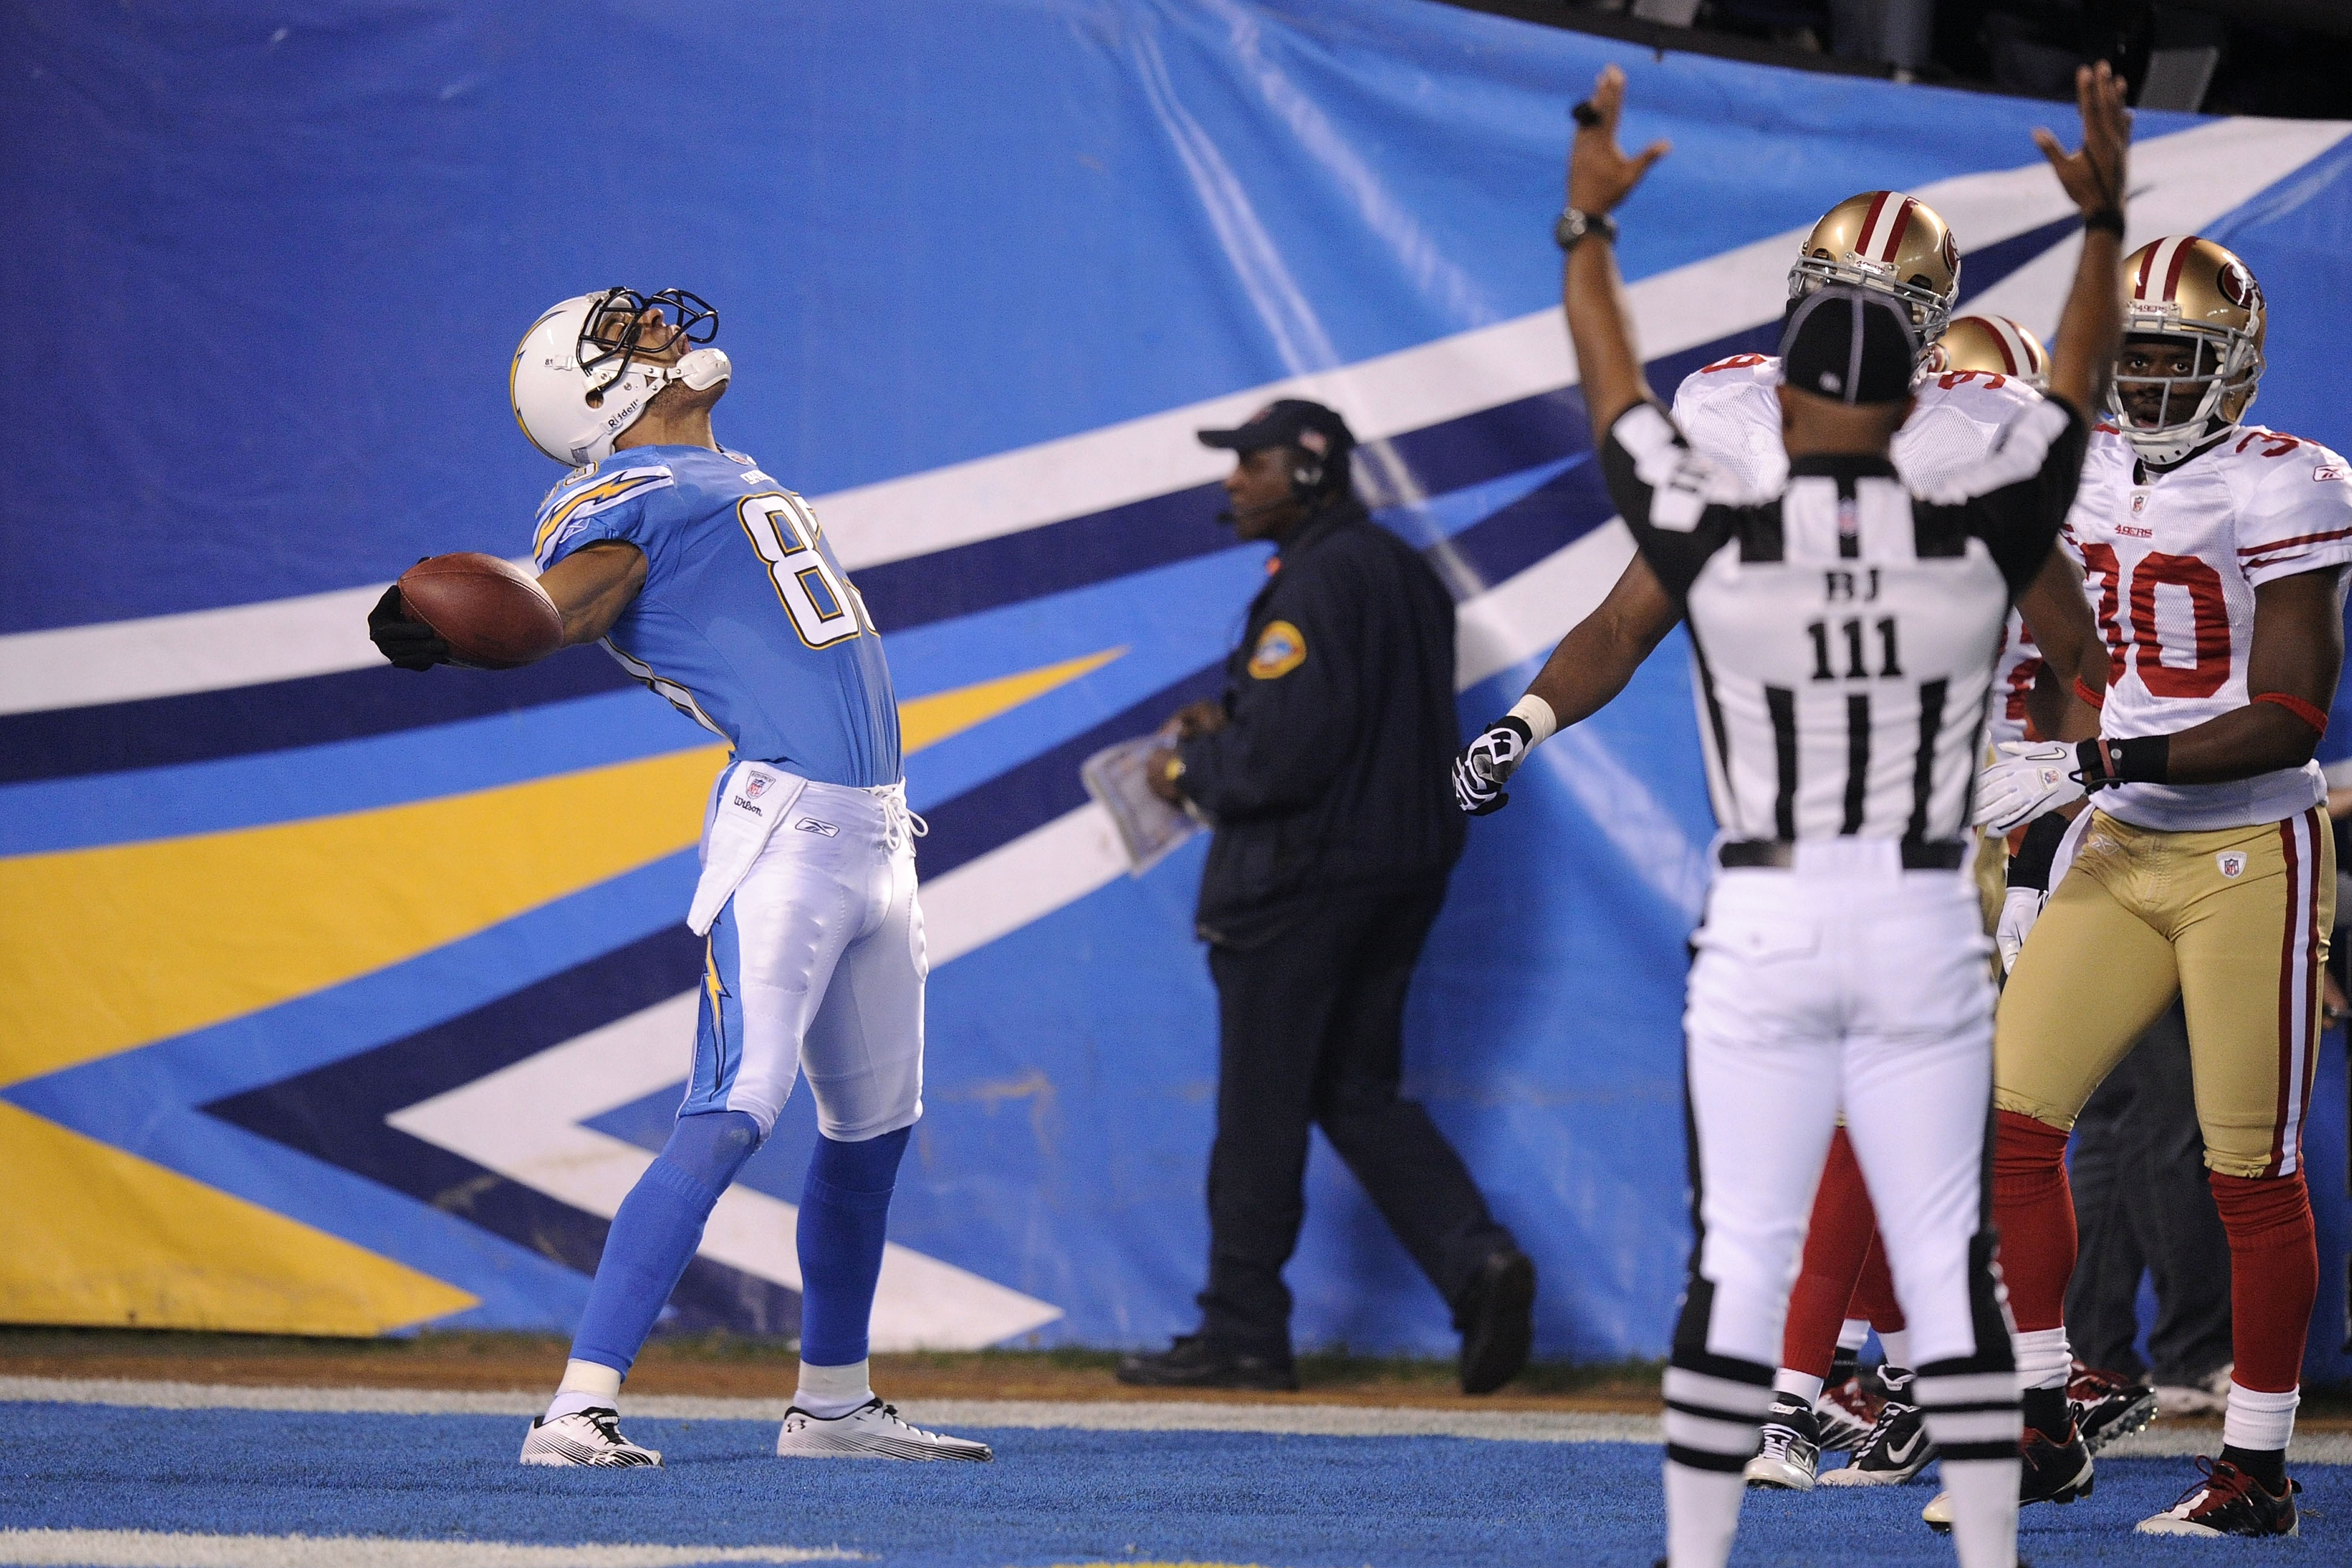 SAN DIEGO, CA - DECEMBER 16:  Wide receiver Vincent Jackson #83 of the San Diego Chargers celebrates scoring a touchdown in the first quarter against the San Francisco 49ers at Qualcomm Stadium on December 16, 2010 in San Diego, California.  (Photo by Har